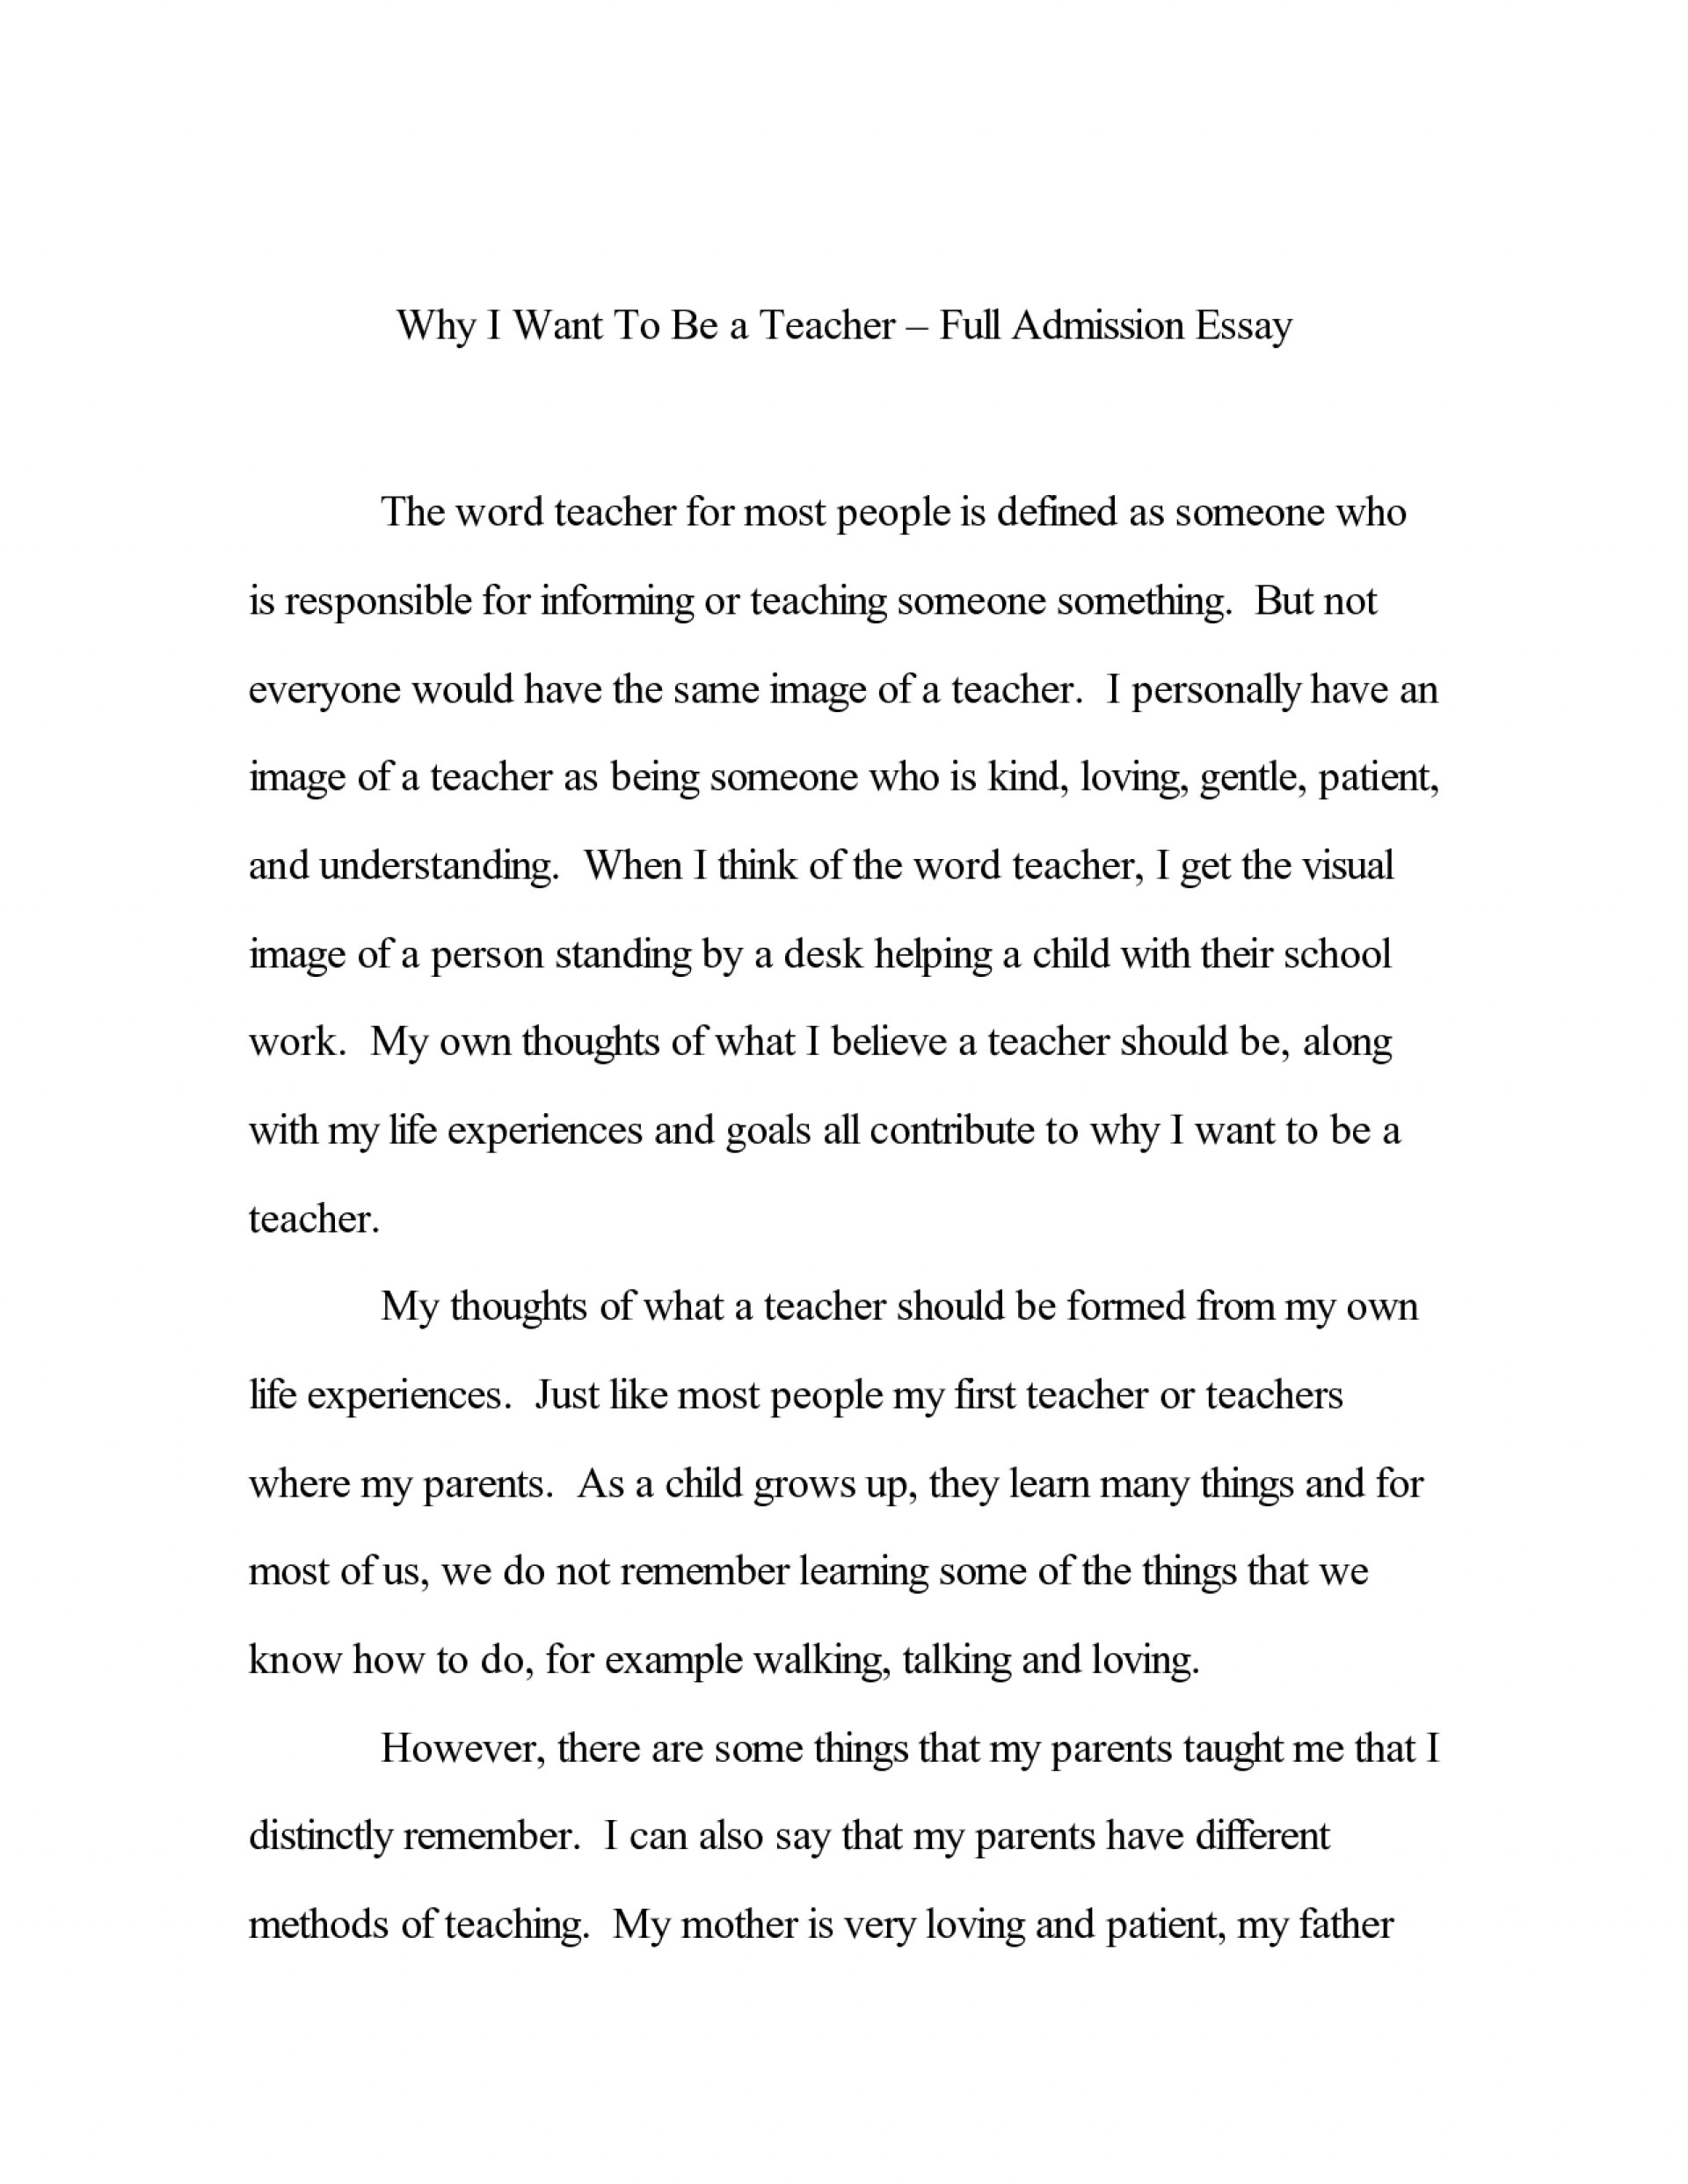 004 Writing College Application Essay Rare A About Yourself Examples How To Write Term Paper Outline Introduction 1920